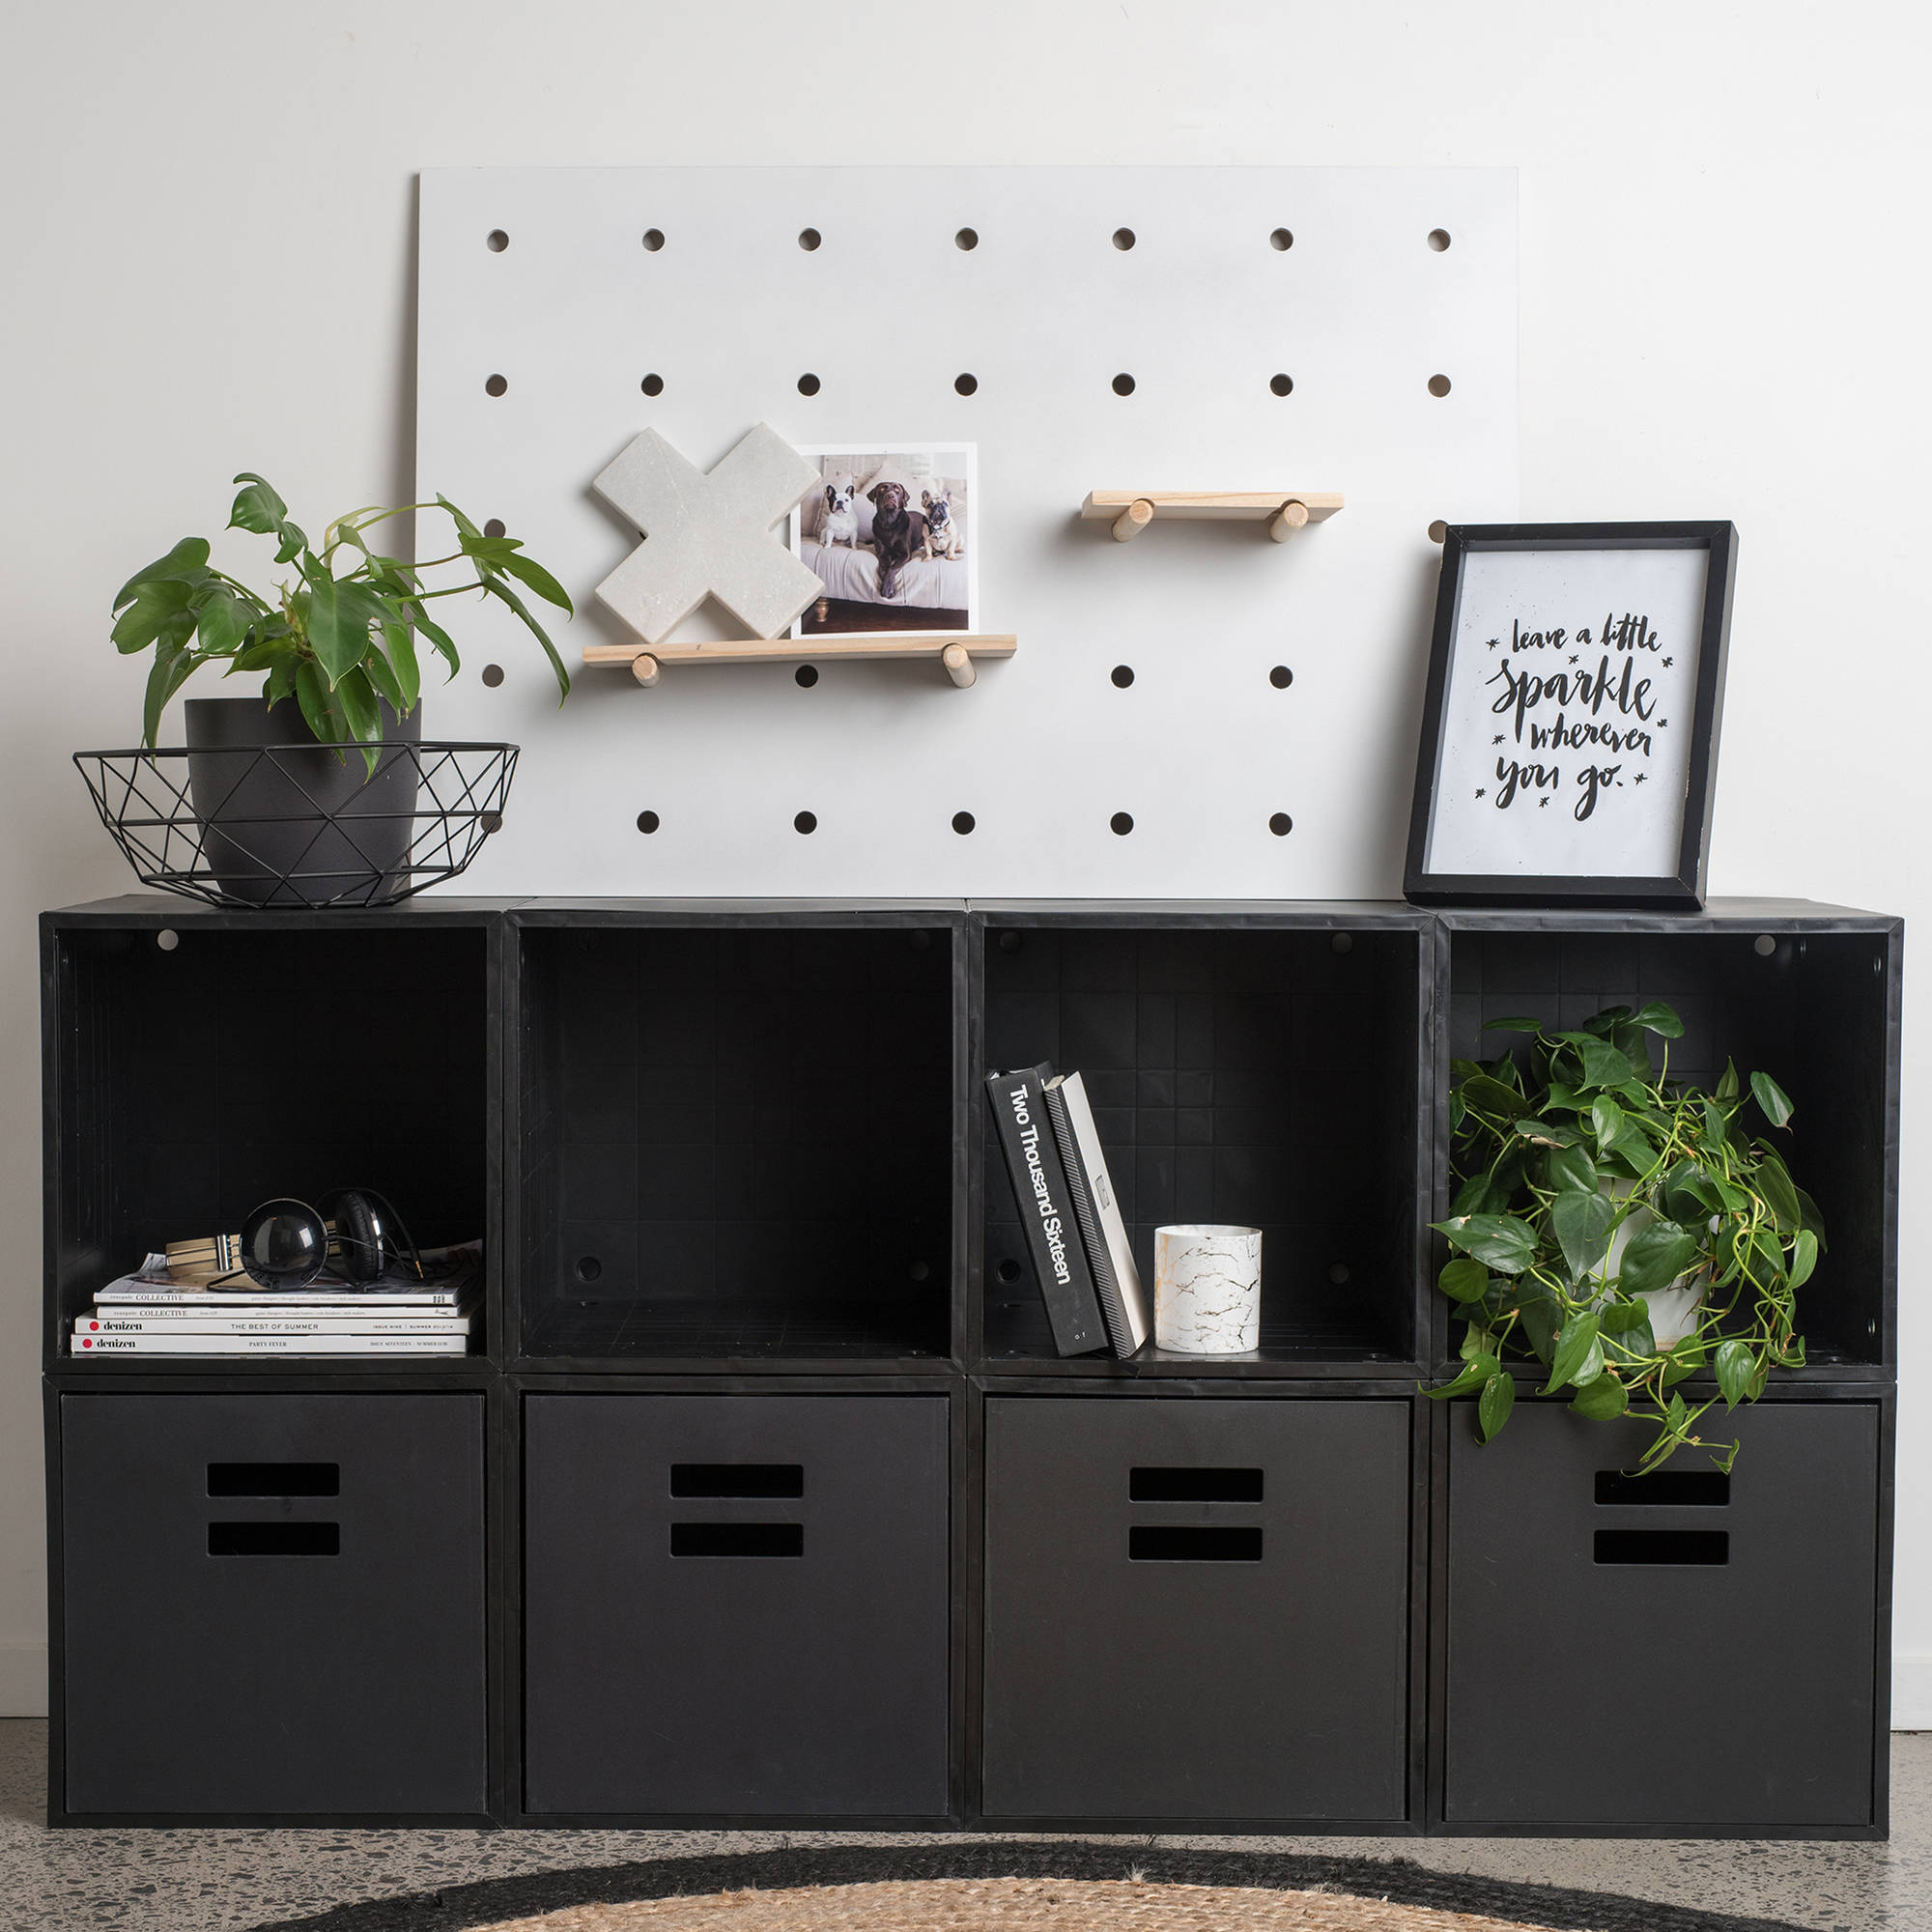 iCube 8-Cube Sideboard Luxe with Drawers, Black